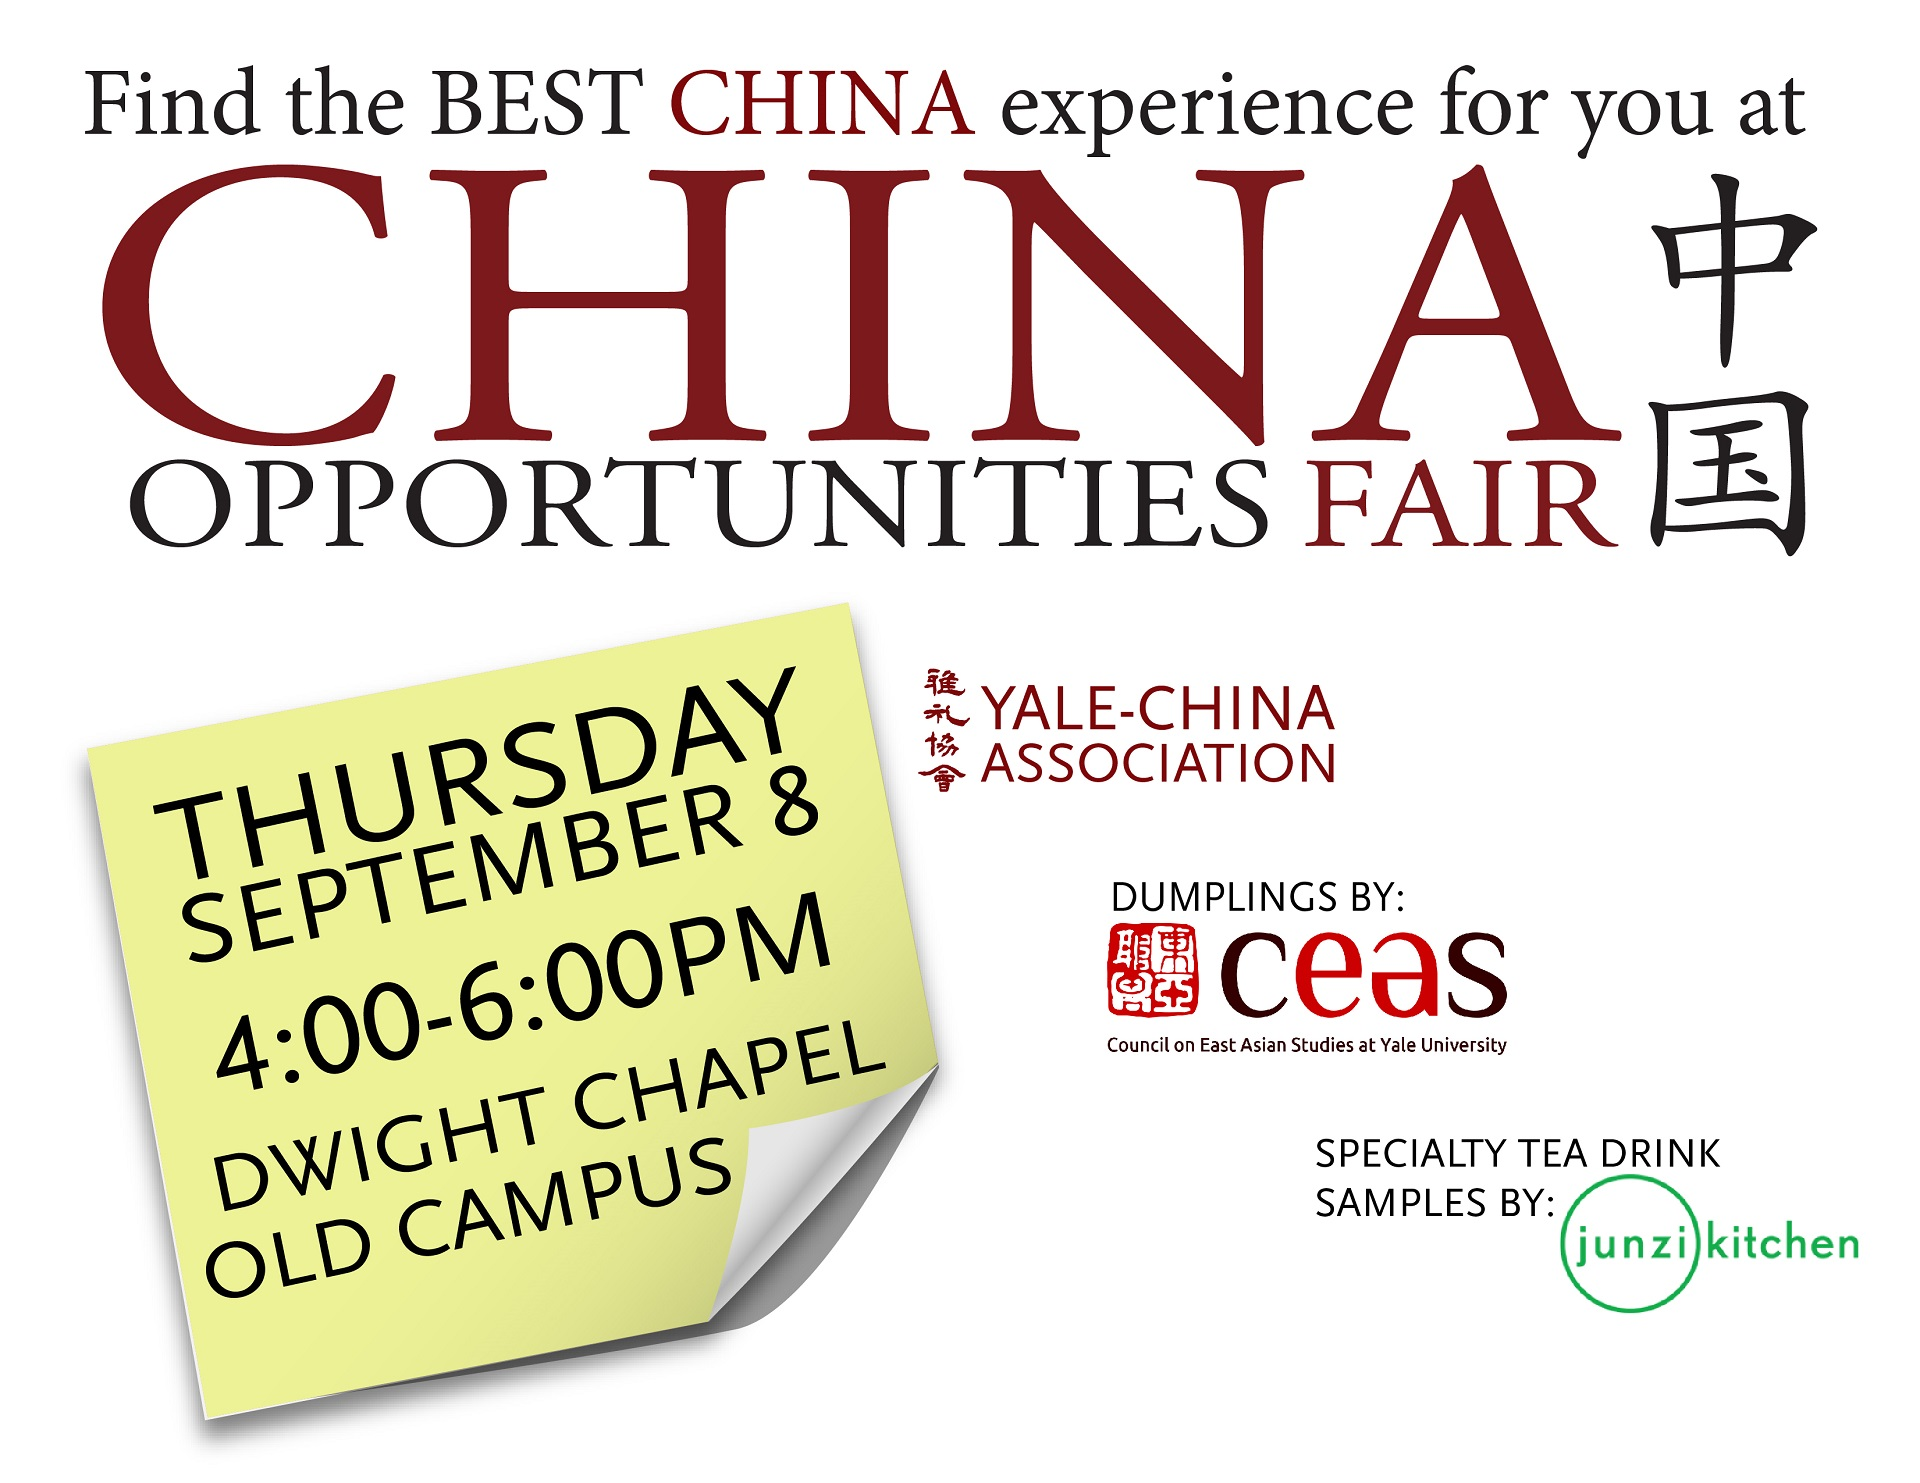 China Opportunities Fair at Yale University